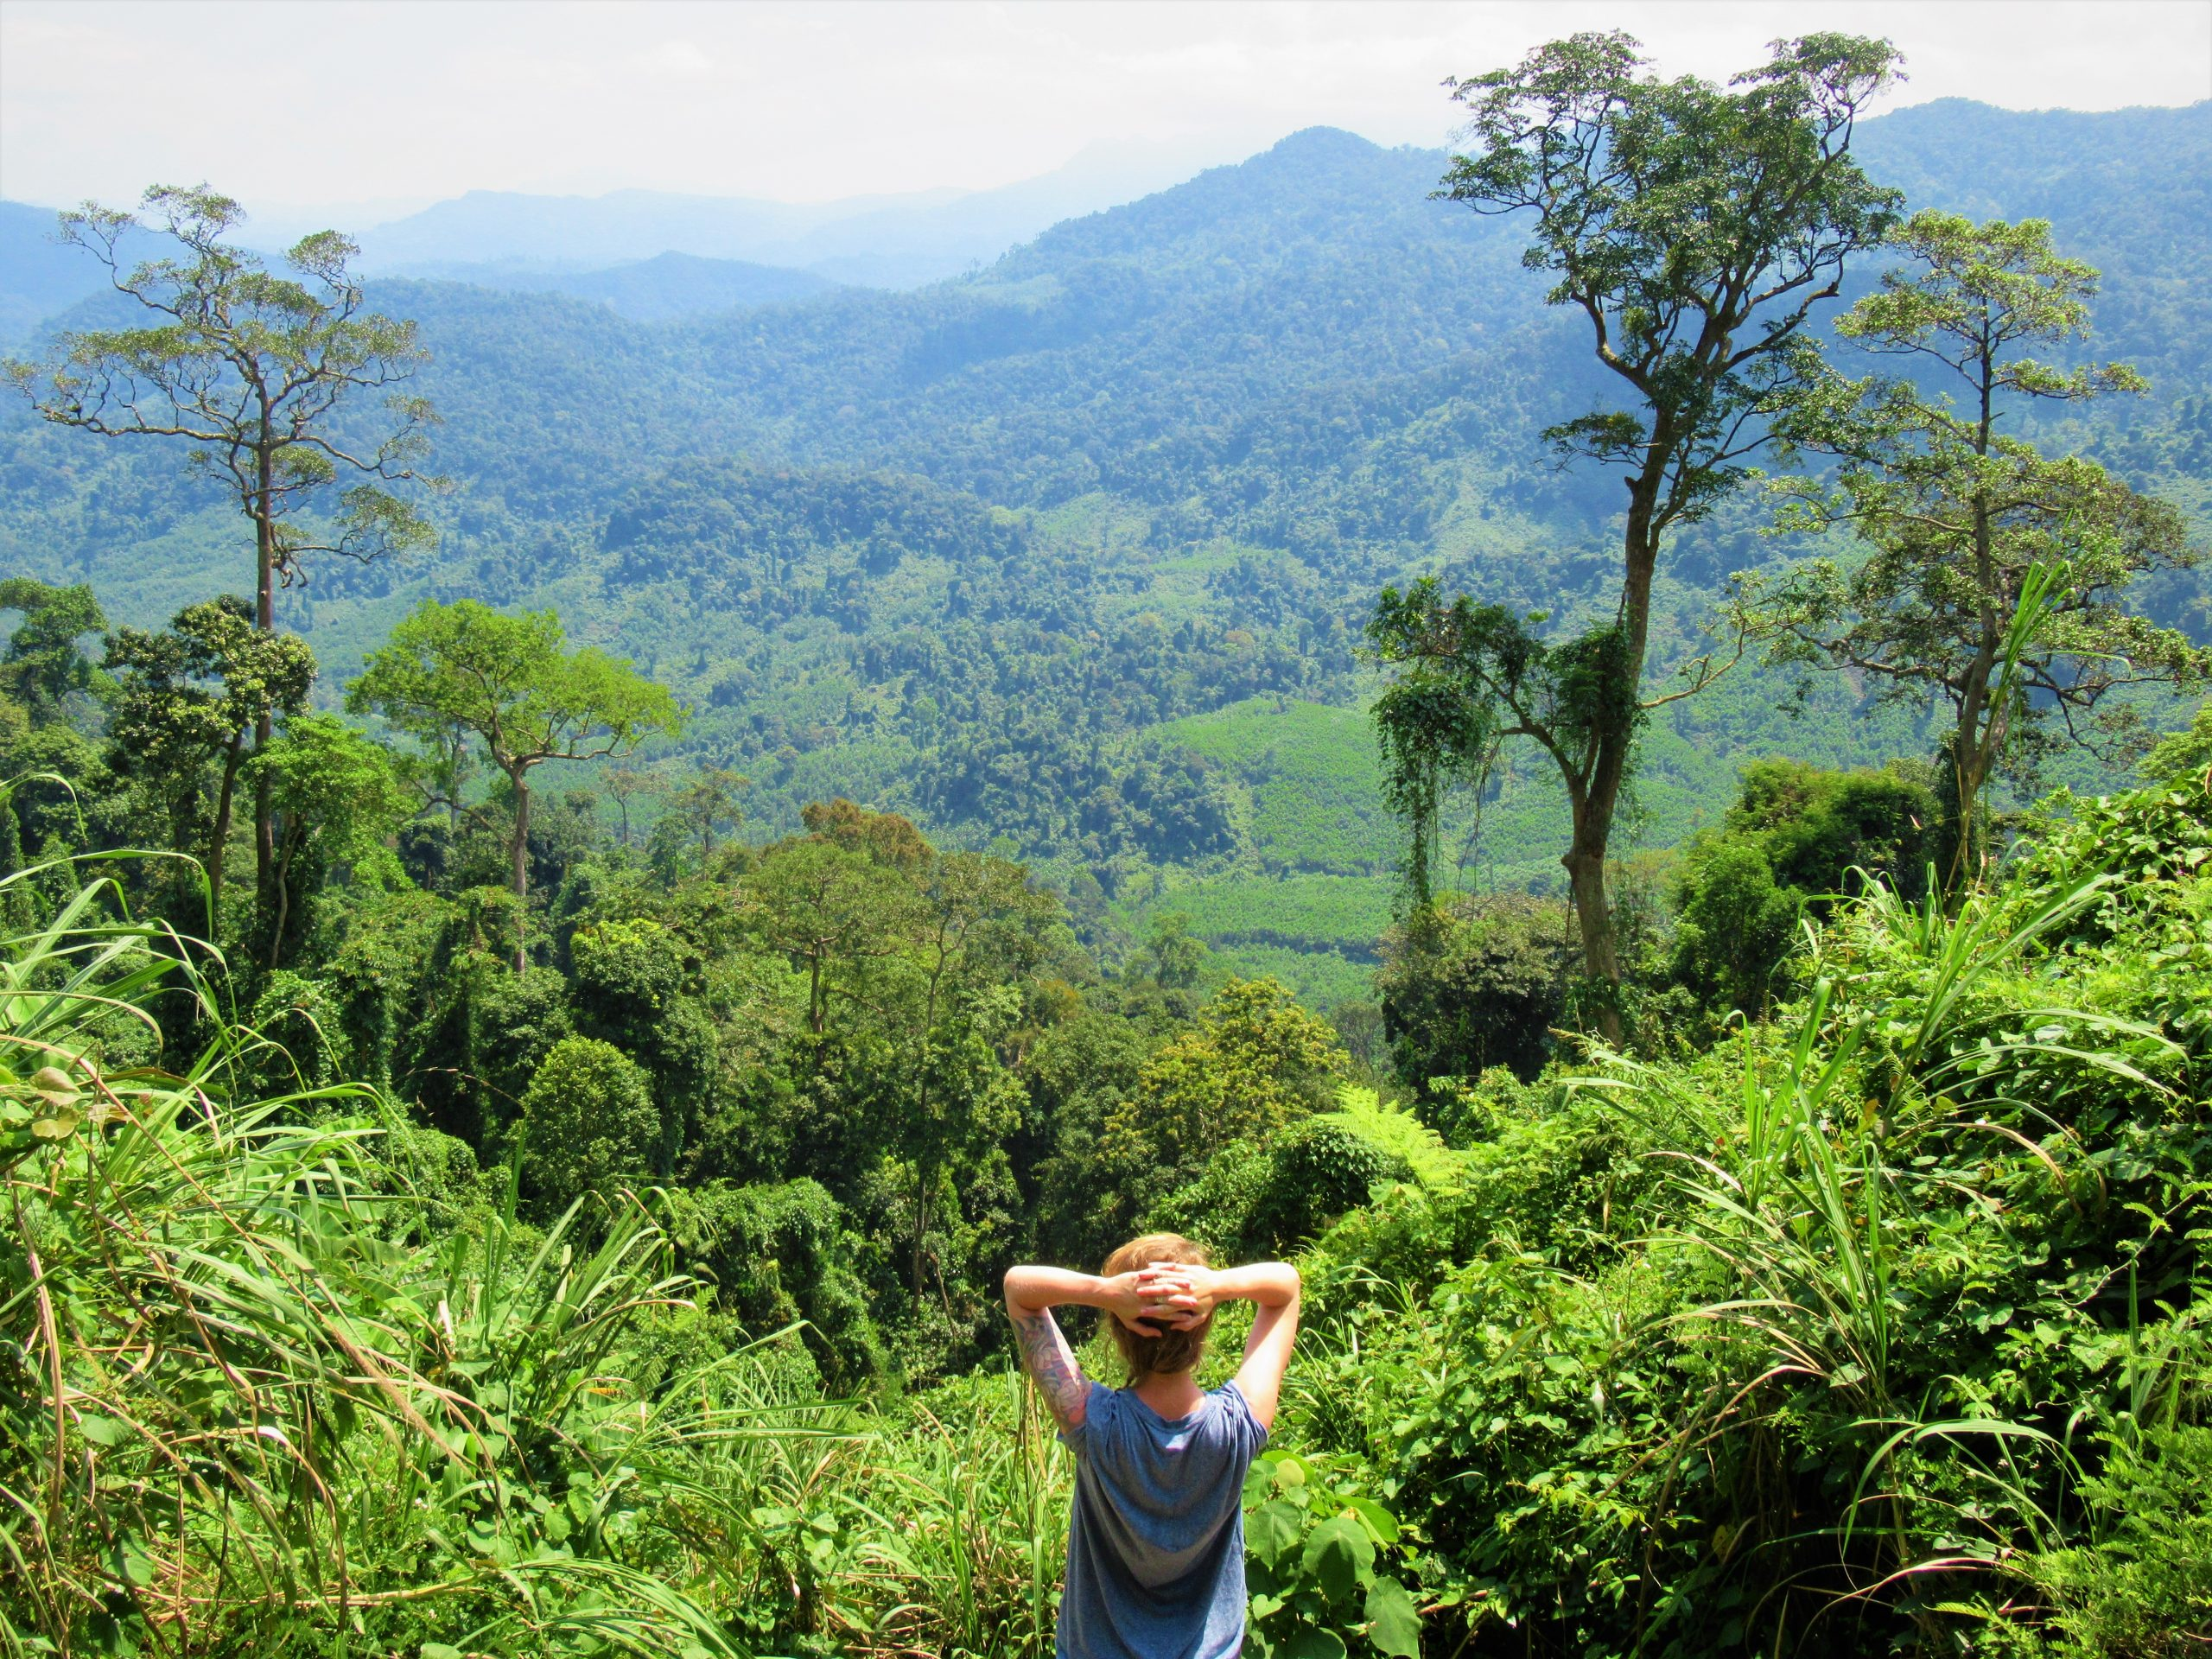 Gazing over the jungle canopy on the Western Ho Chi Minh Road, Central Vietnam